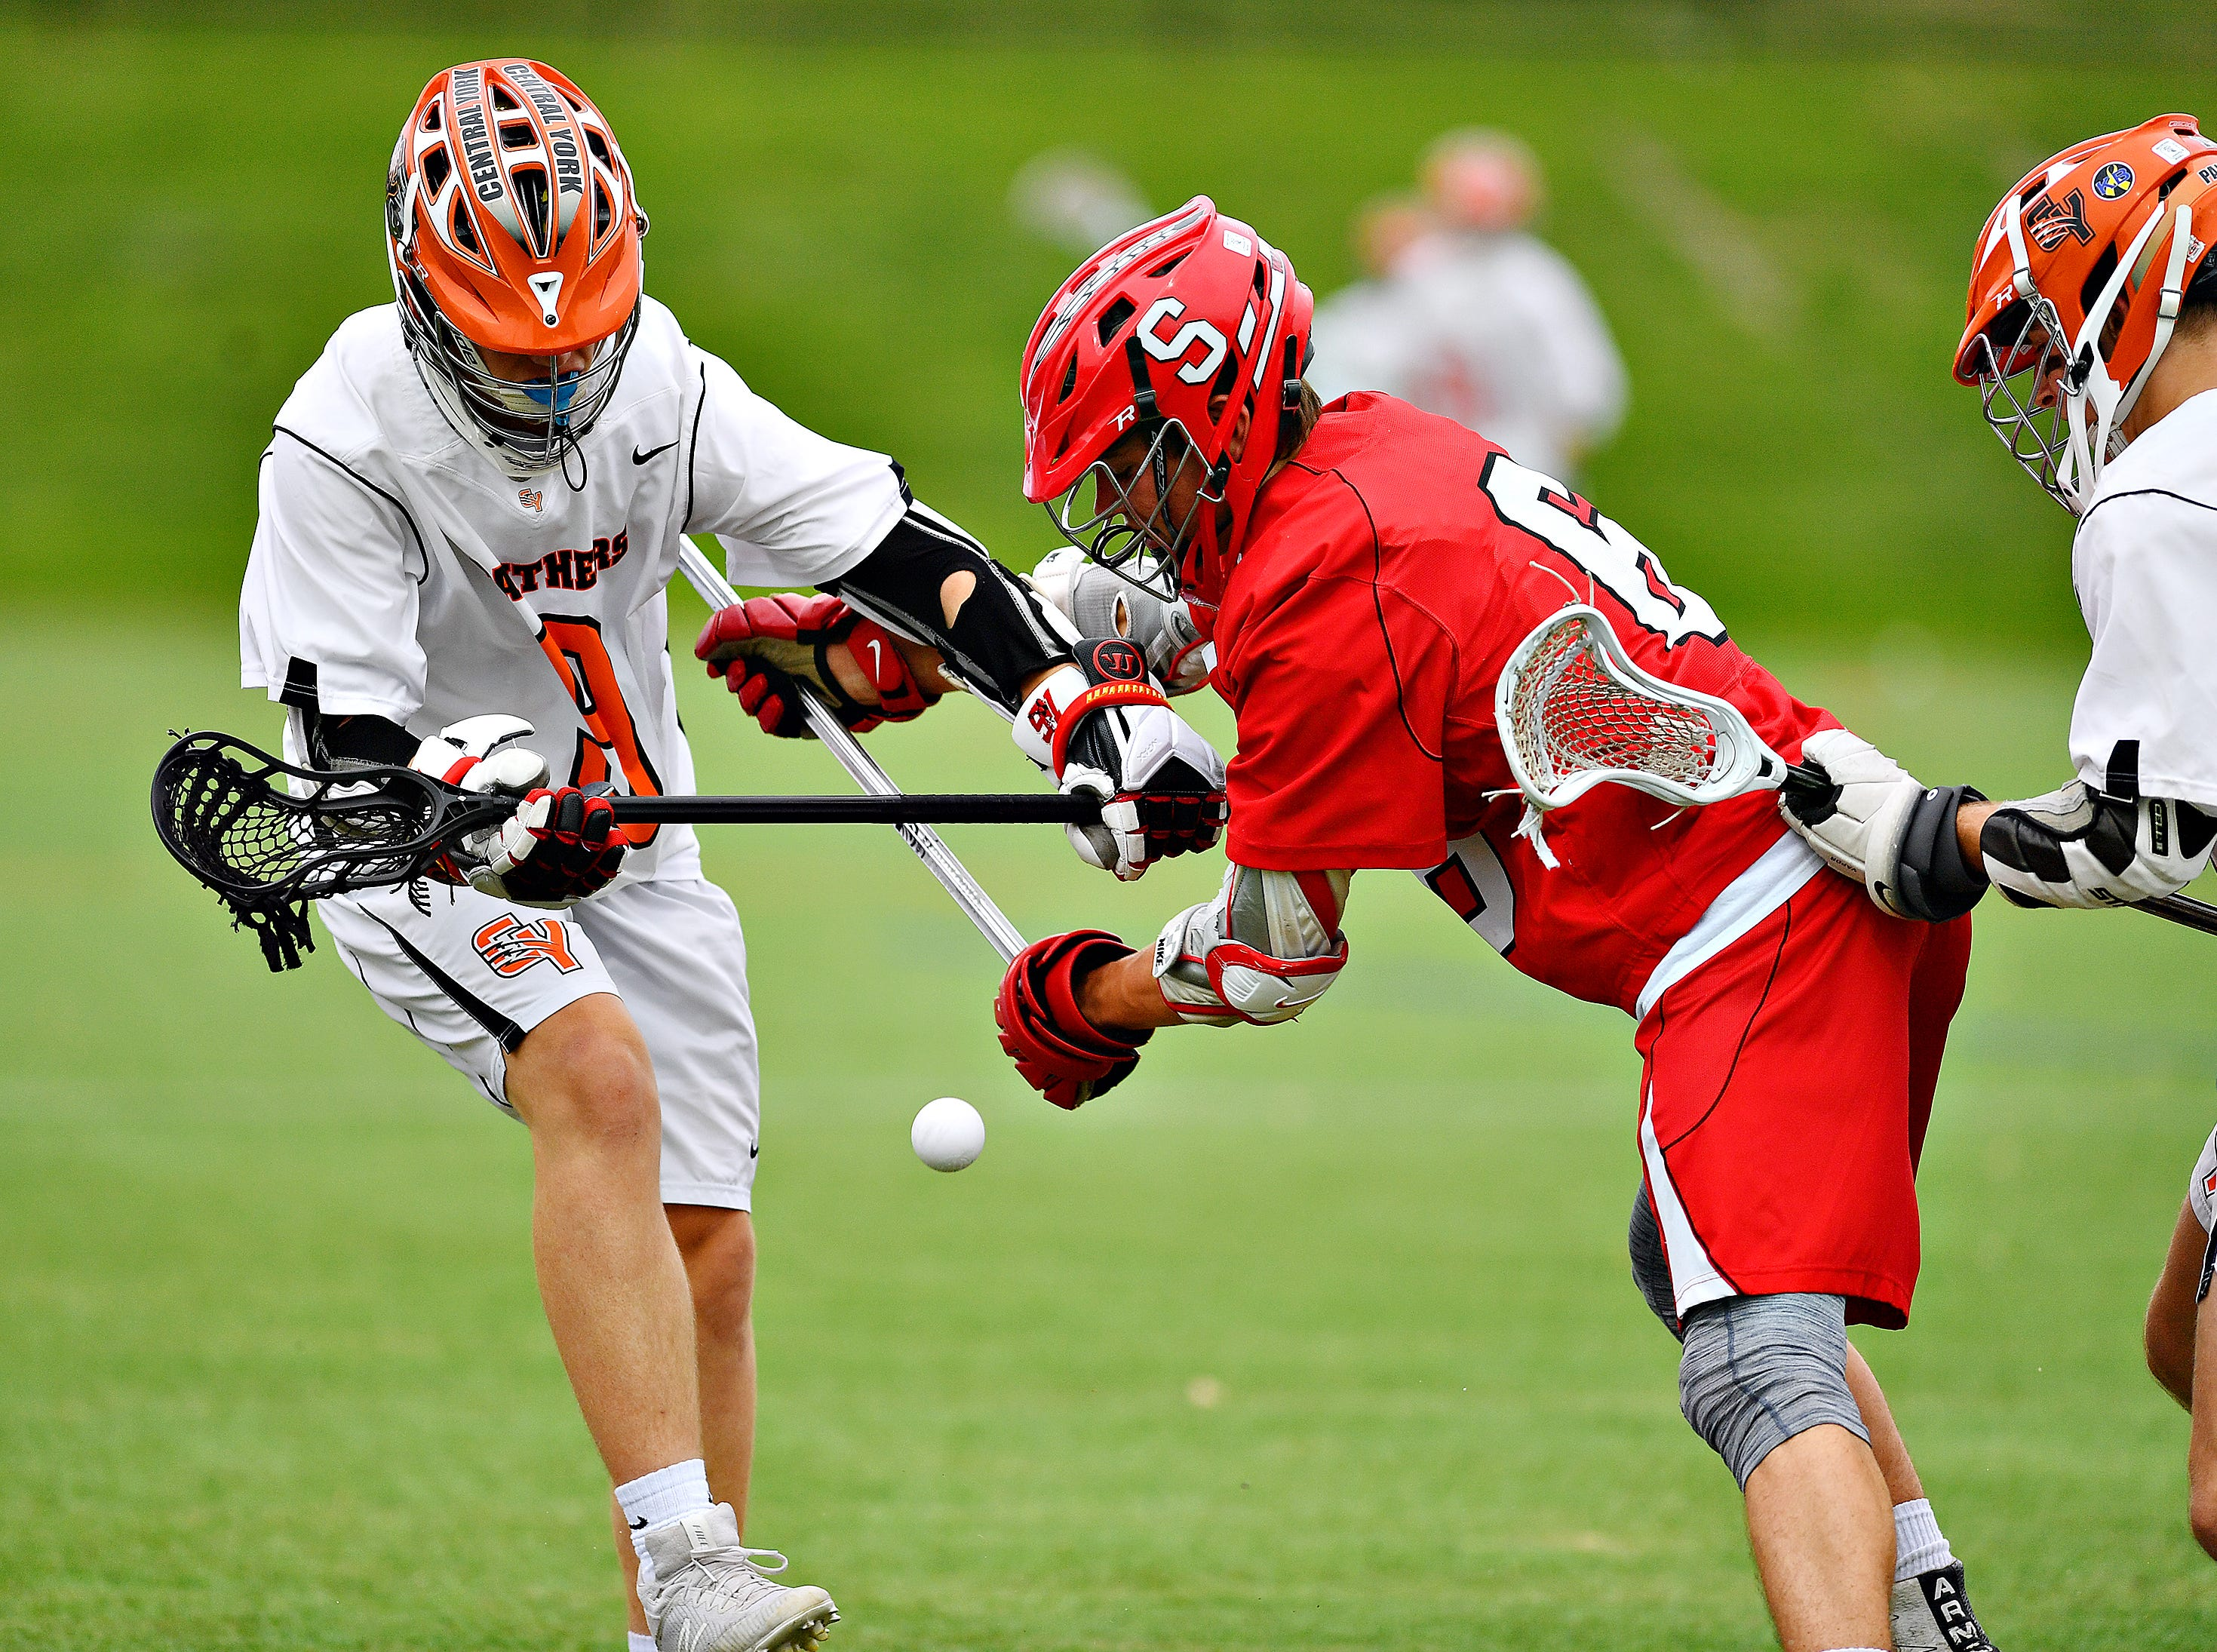 Susquehannock vs Central York during boys lacrosse semifinal action at South Western High School in Hanover, Wednesday, May 8, 2019. Dawn J. Sagert photo